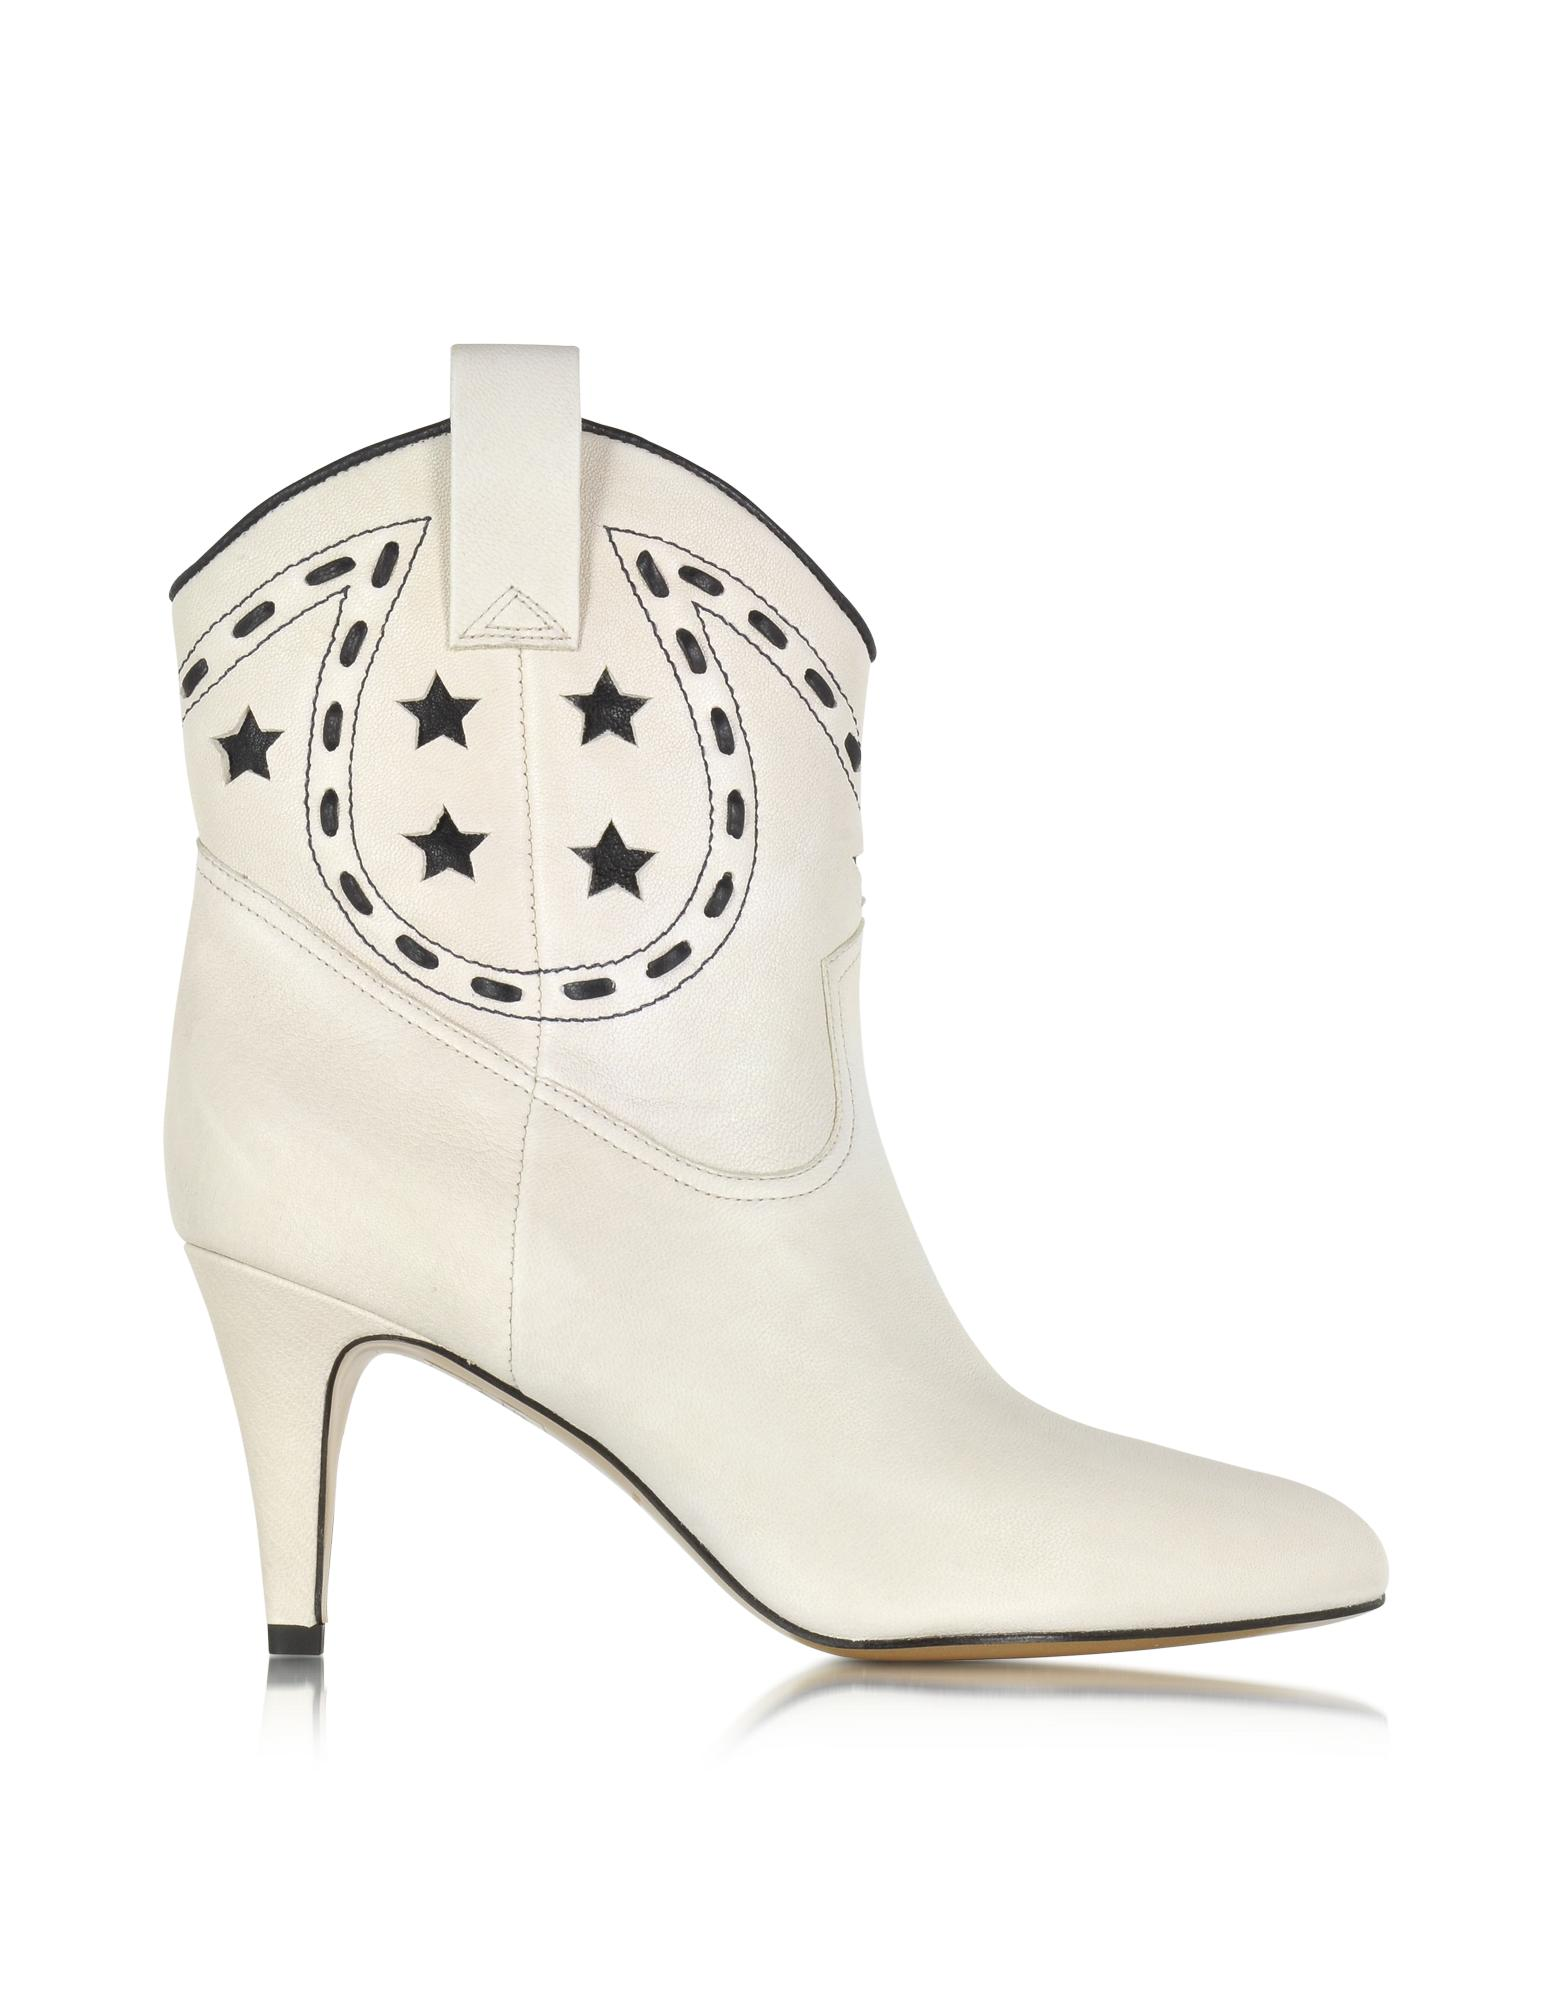 Georgia Ivory Leather Cowboy Boot - Marc Jacobs